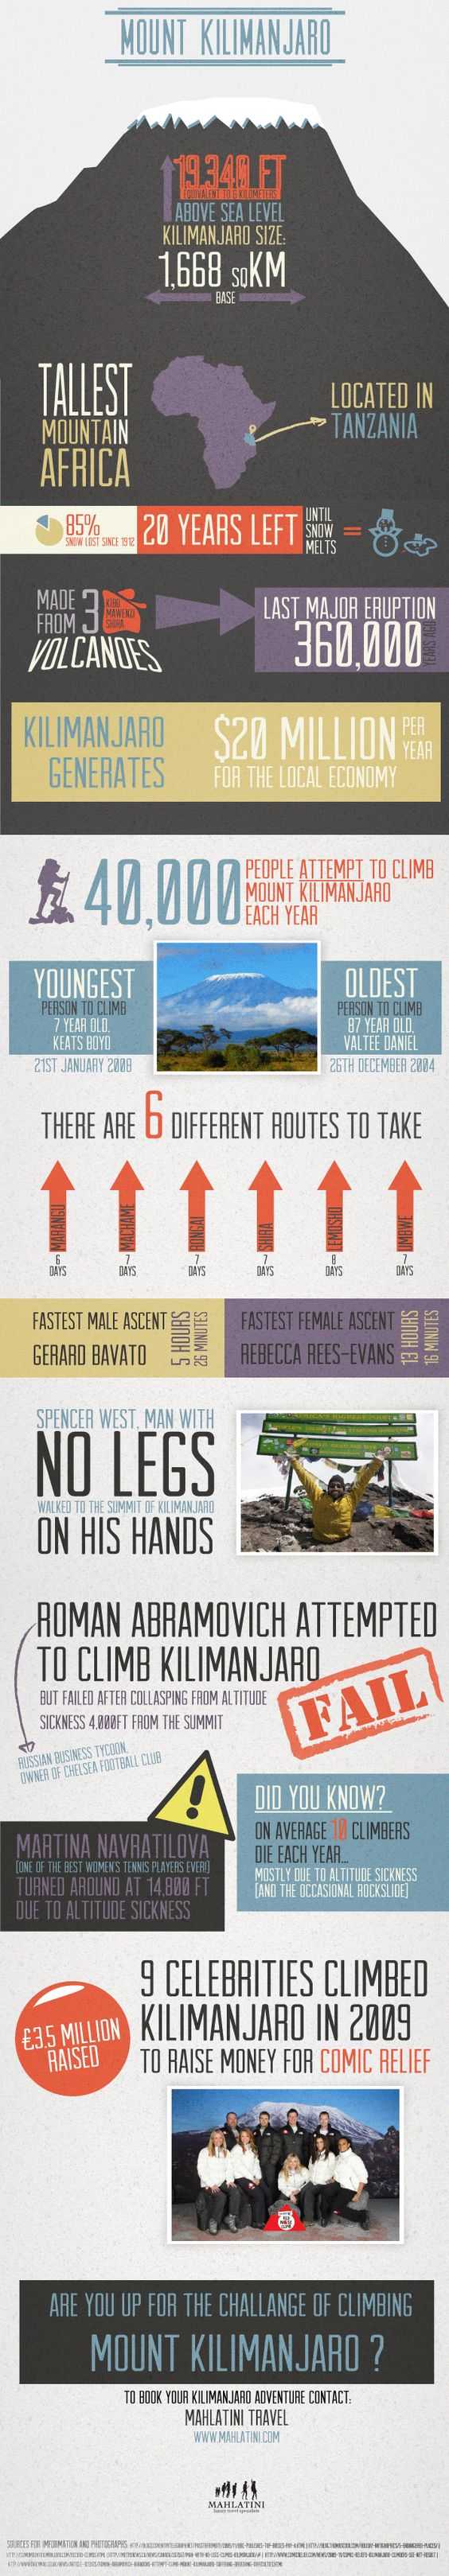 Kilimanjaro: The Facts. Have recently been fixating on a trip to climb Kilimanjaro. Wouldnt it be fun to push your boundaries?... you never know.